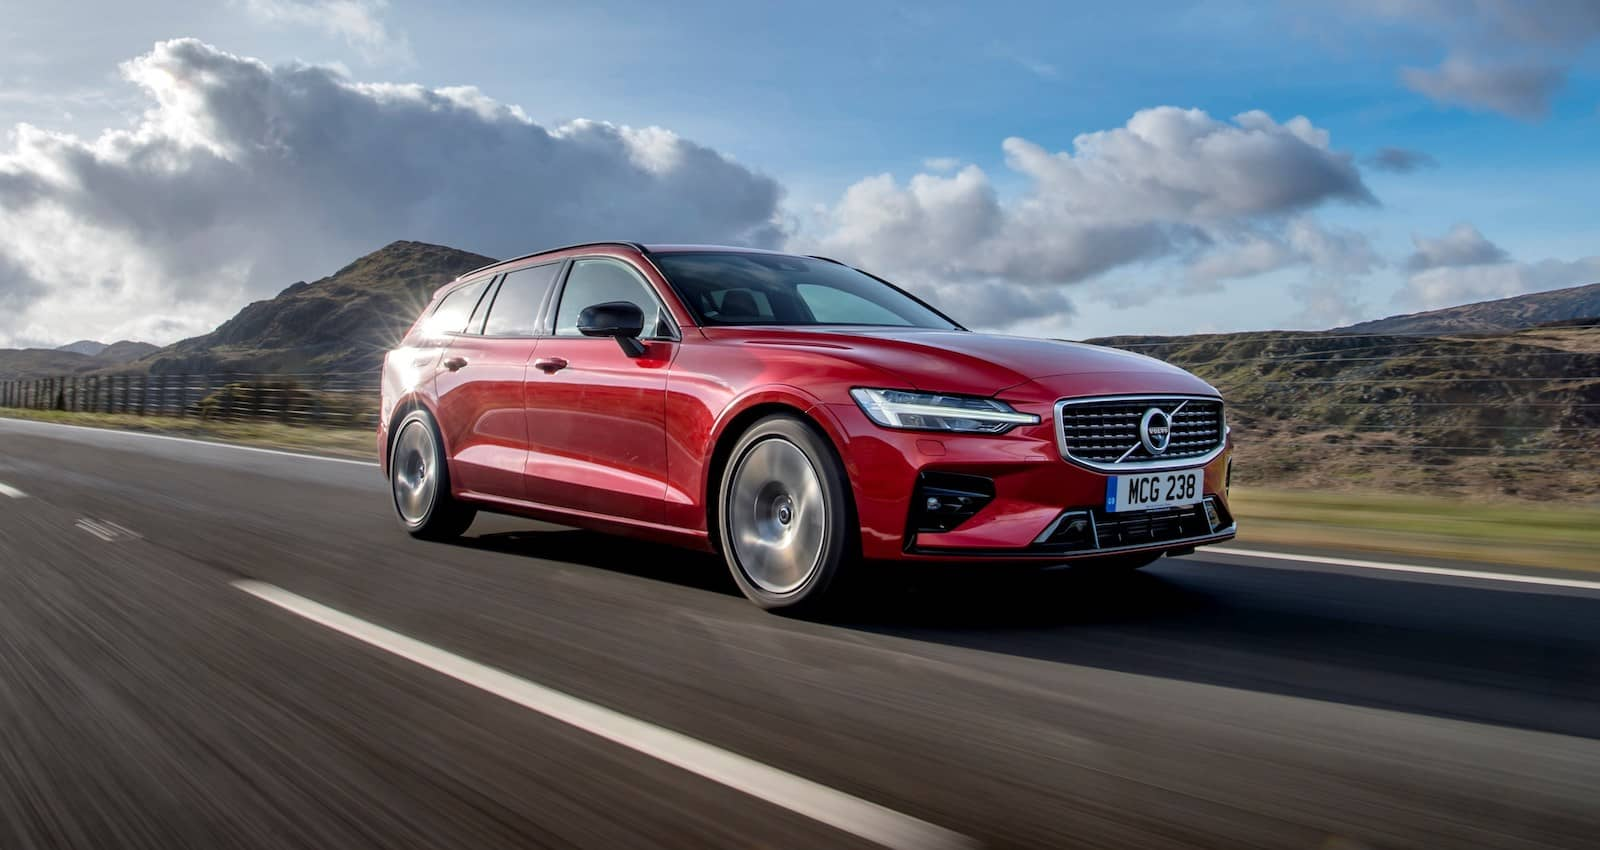 Volvo V60 (2018) new car ratings and reviews | The Car Expert